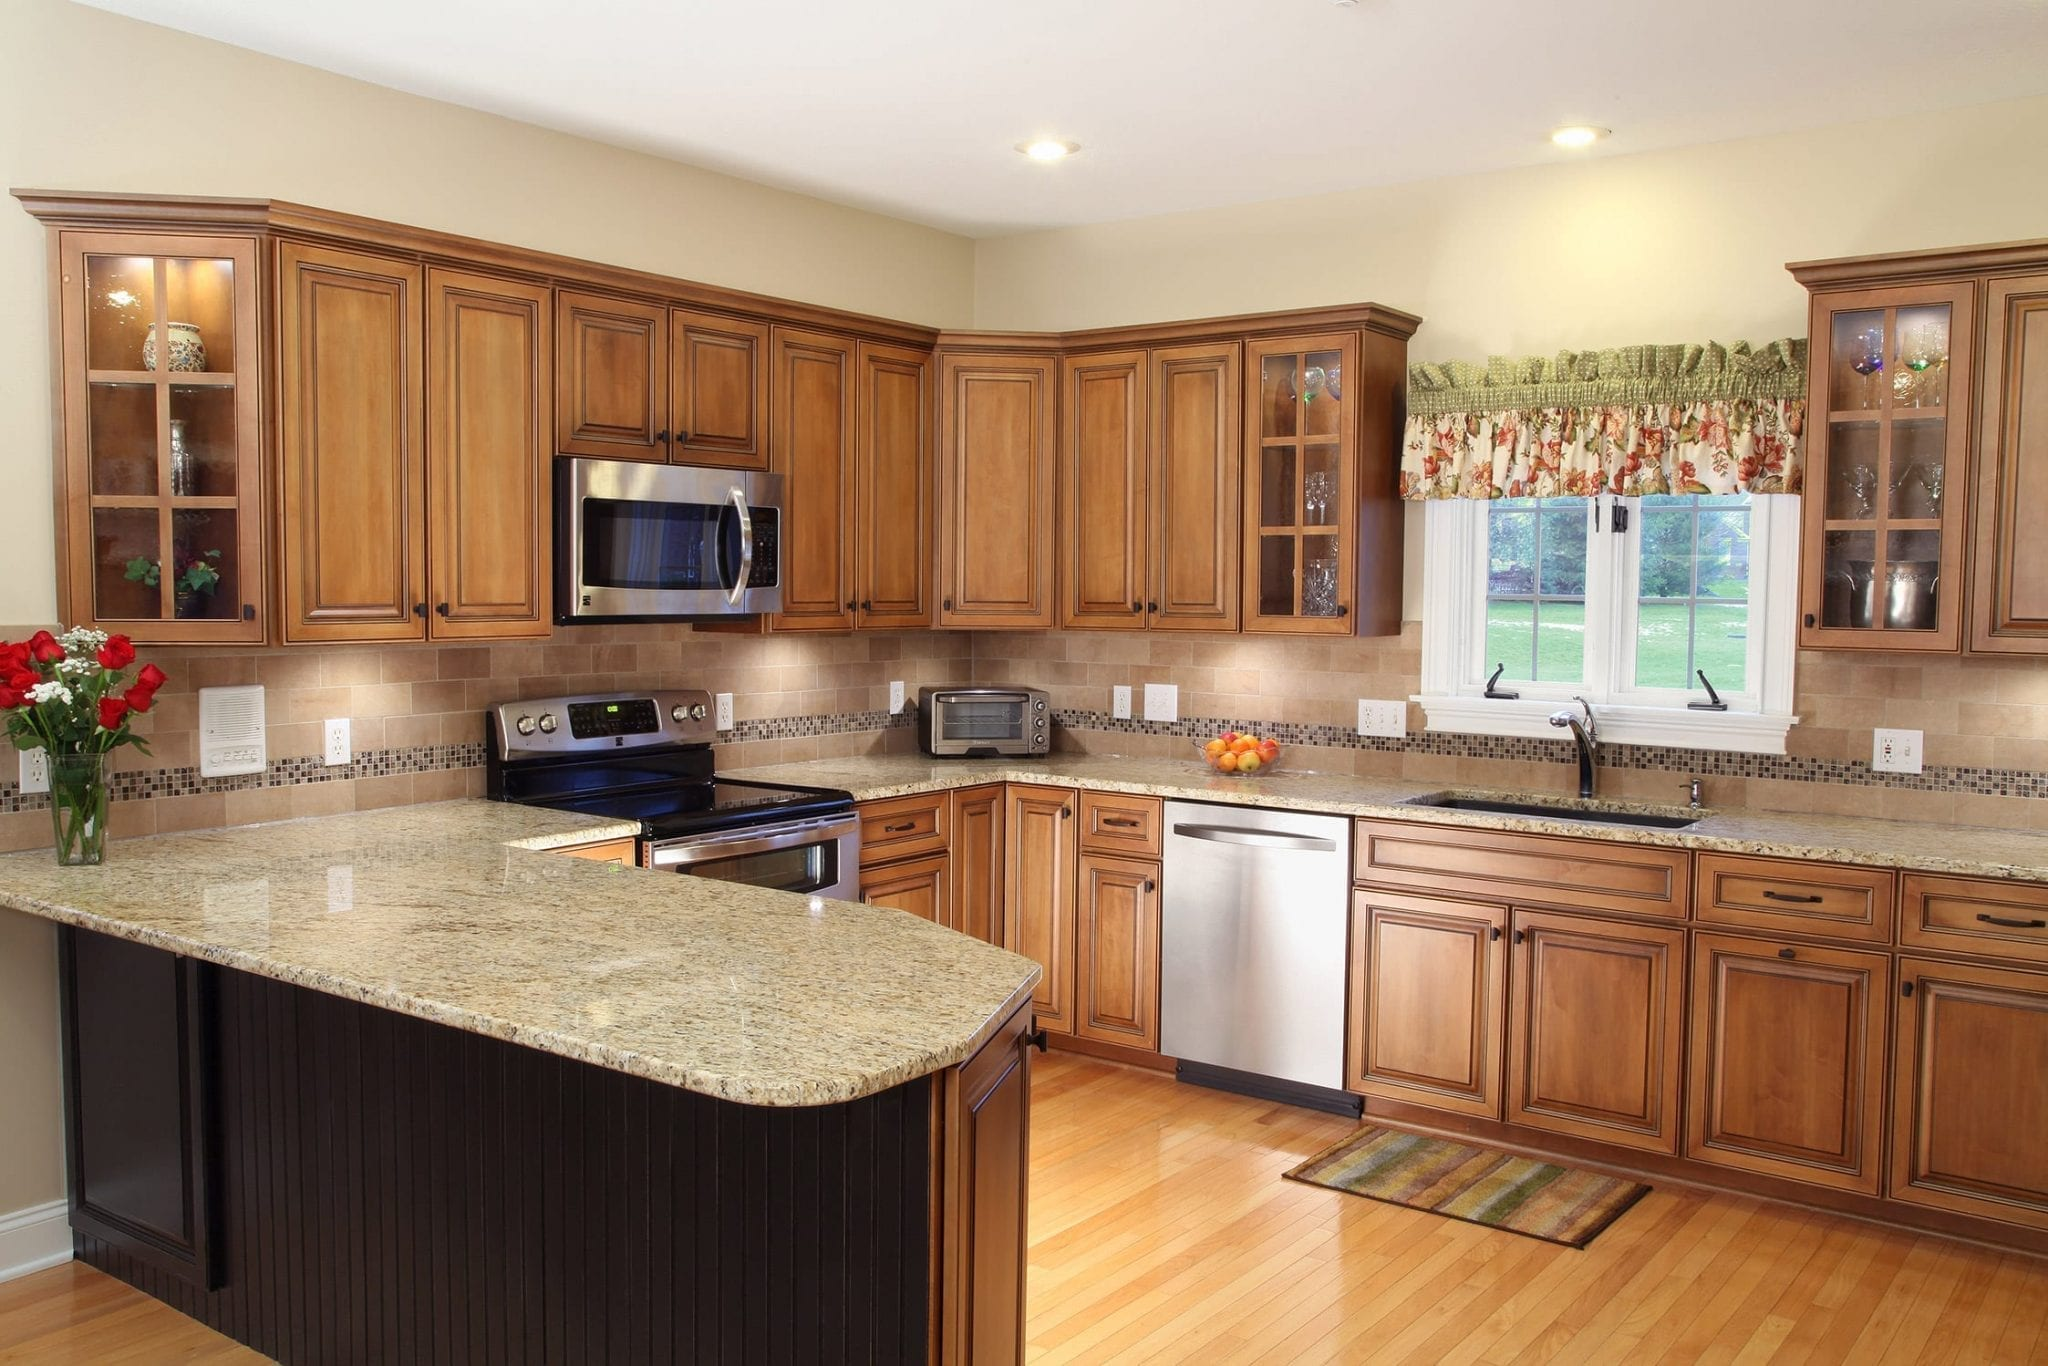 Cabinet Refacing Cost And Comparisons